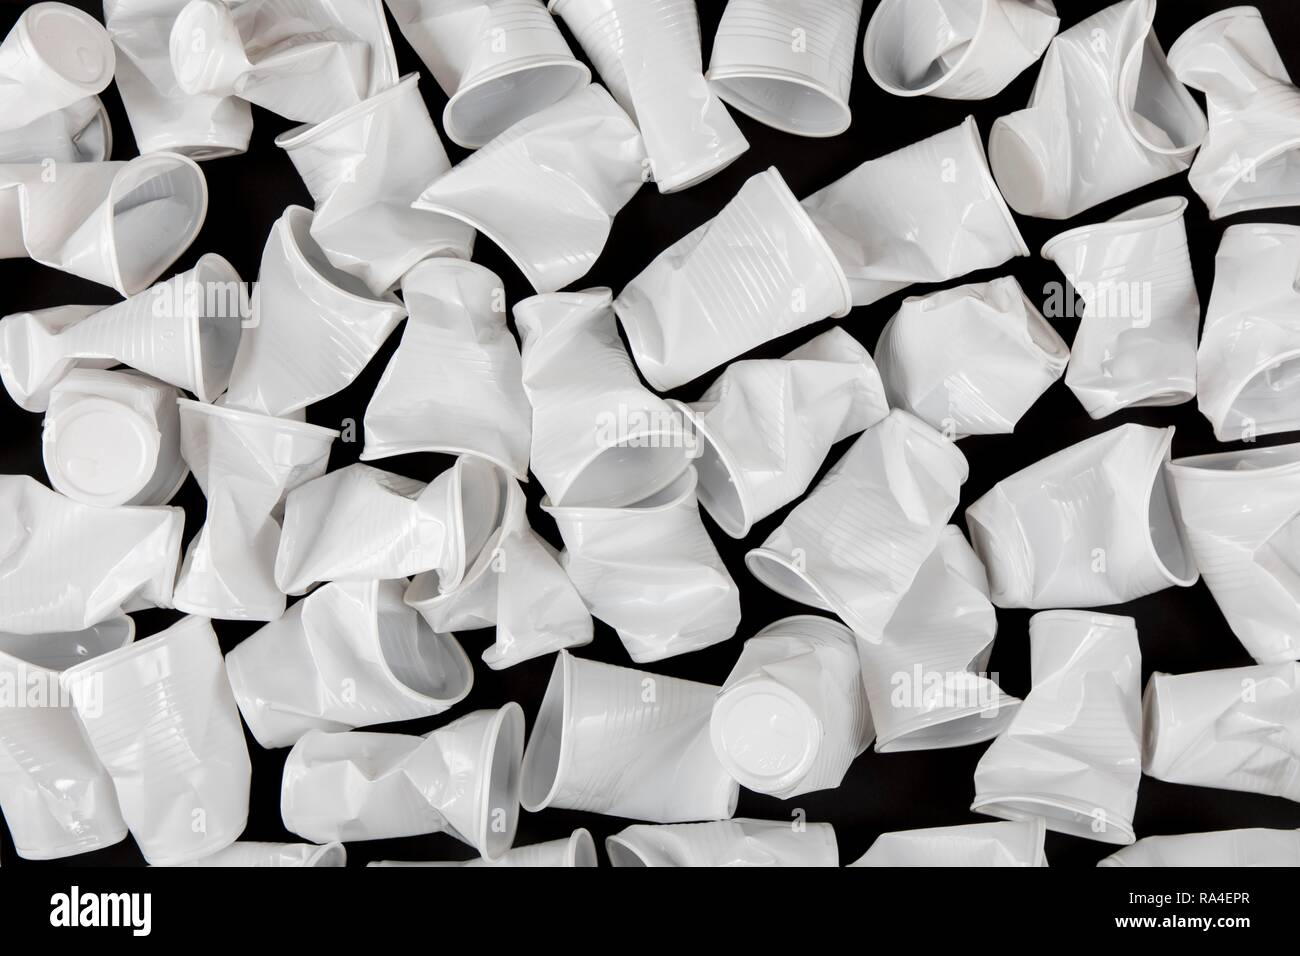 Disposable cup, plastic cup, in white, 0, 2 litres, drinking cup, disposable cup, plastic waste, used, crushed, crumpled - Stock Image